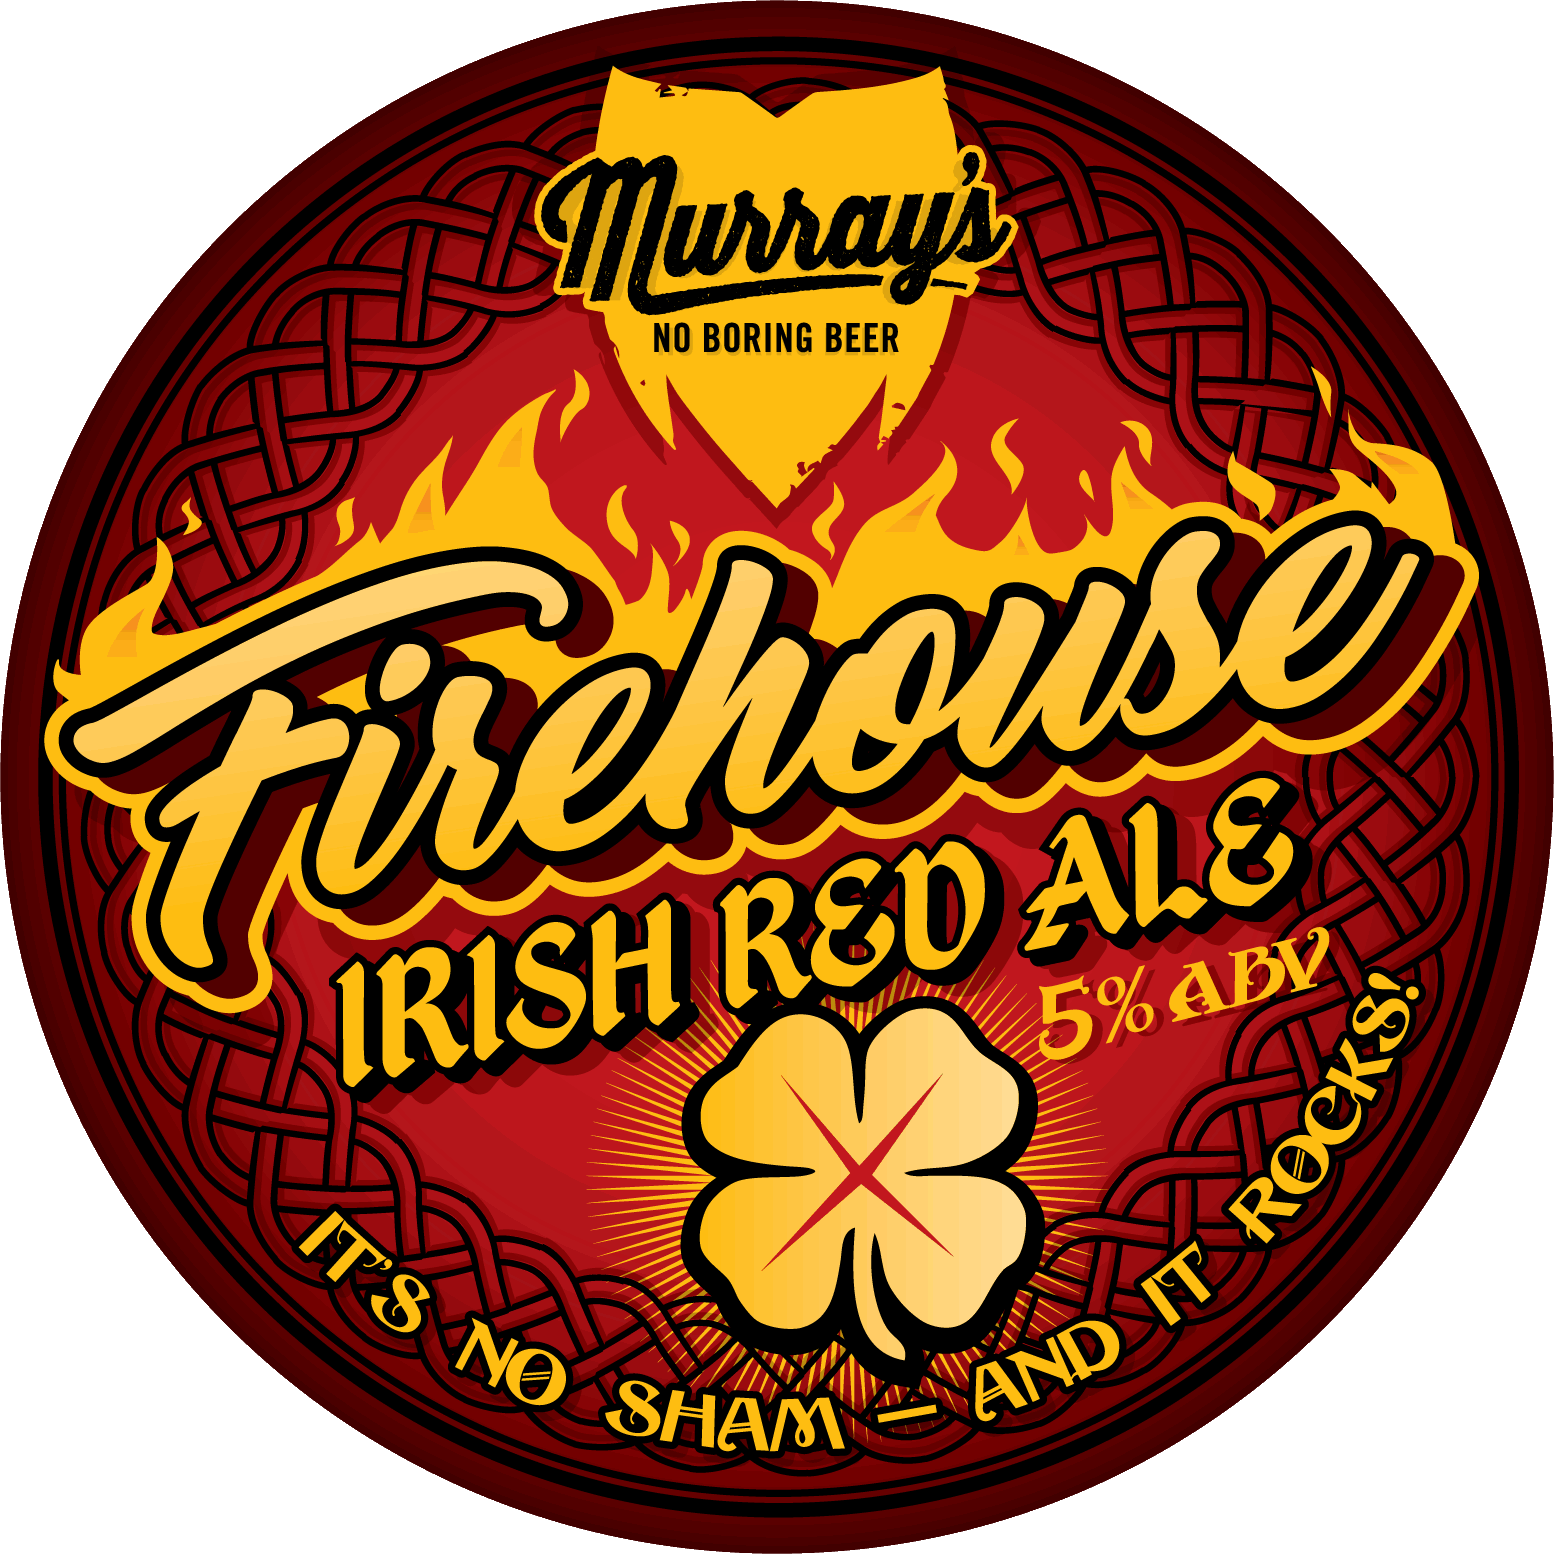 Firehouse Irish Red Ale